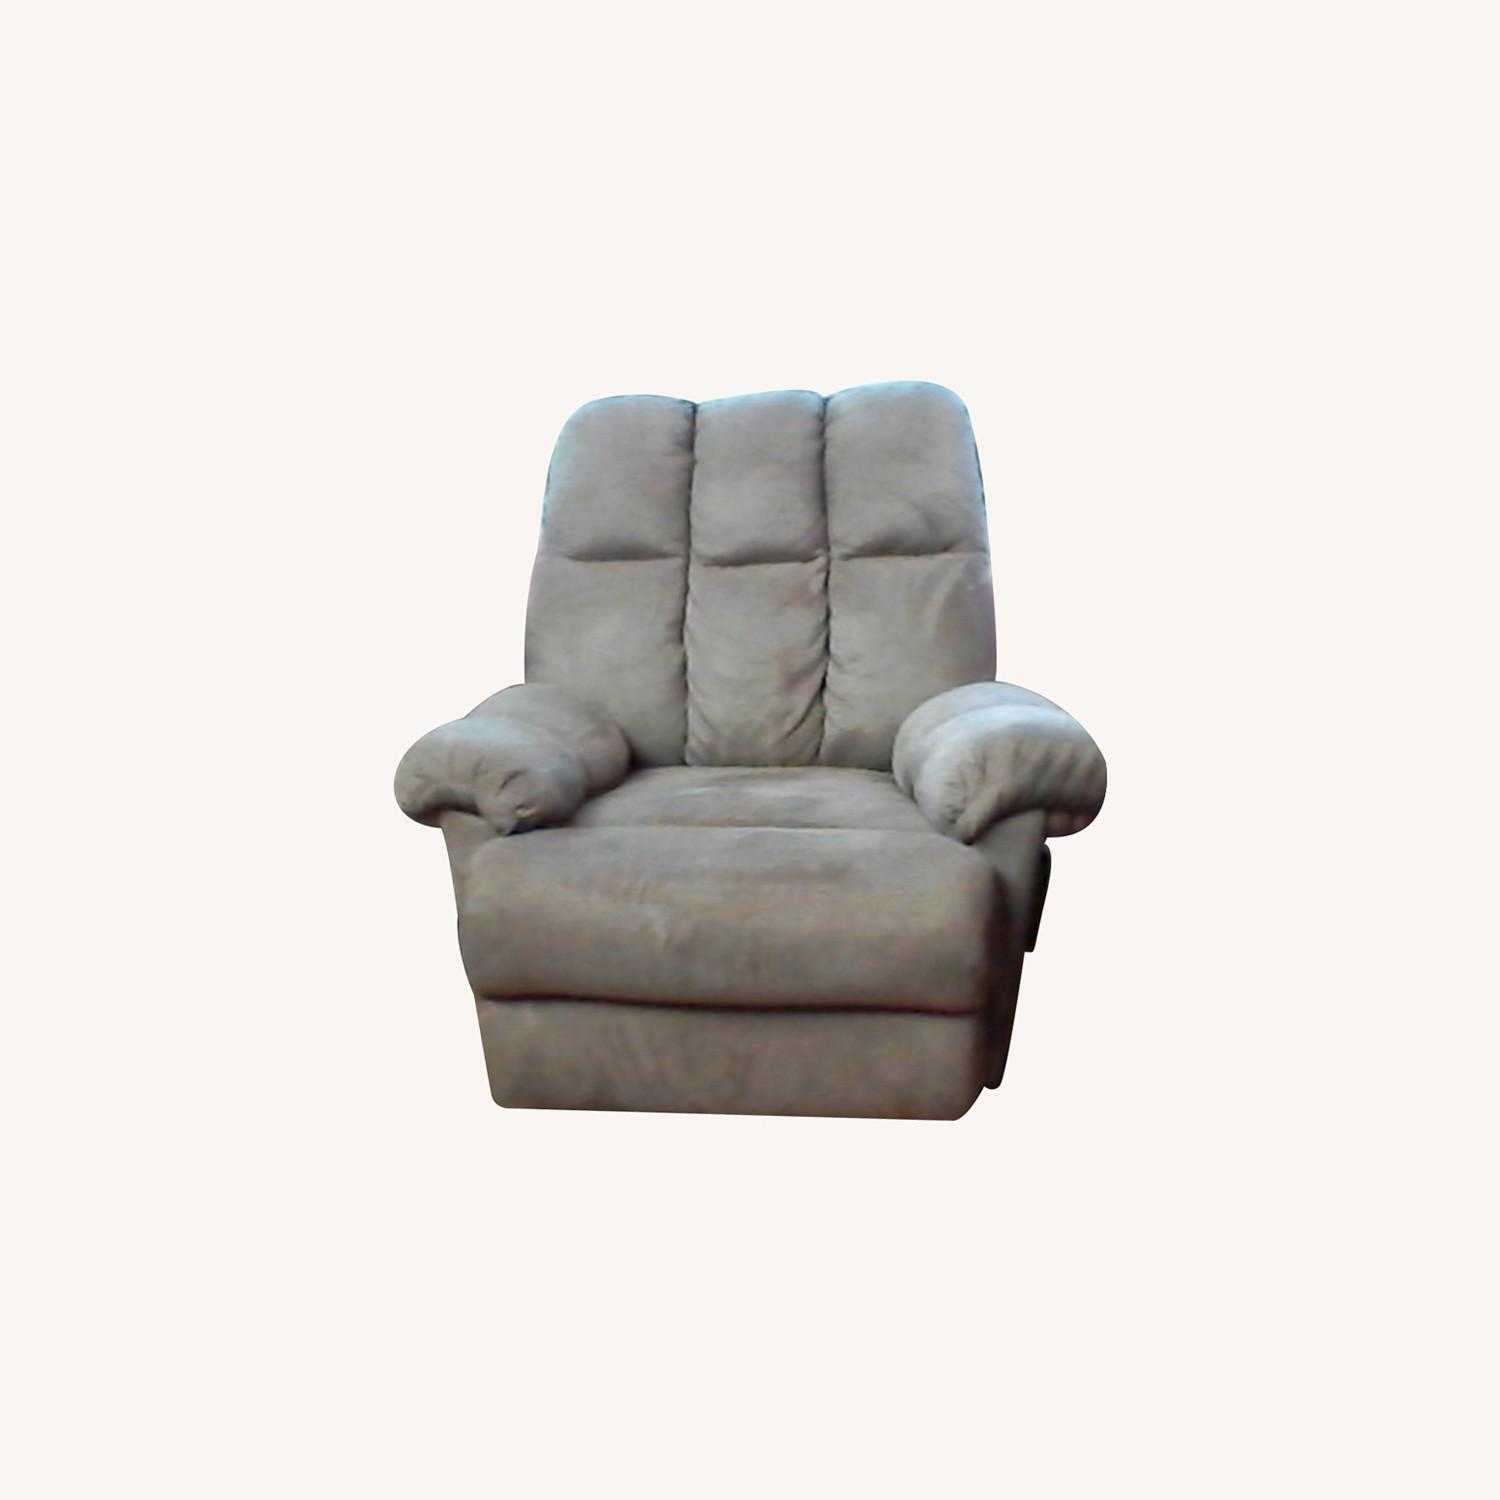 Rocking Chair Nursing and Recliner 2 in 1 - image-0